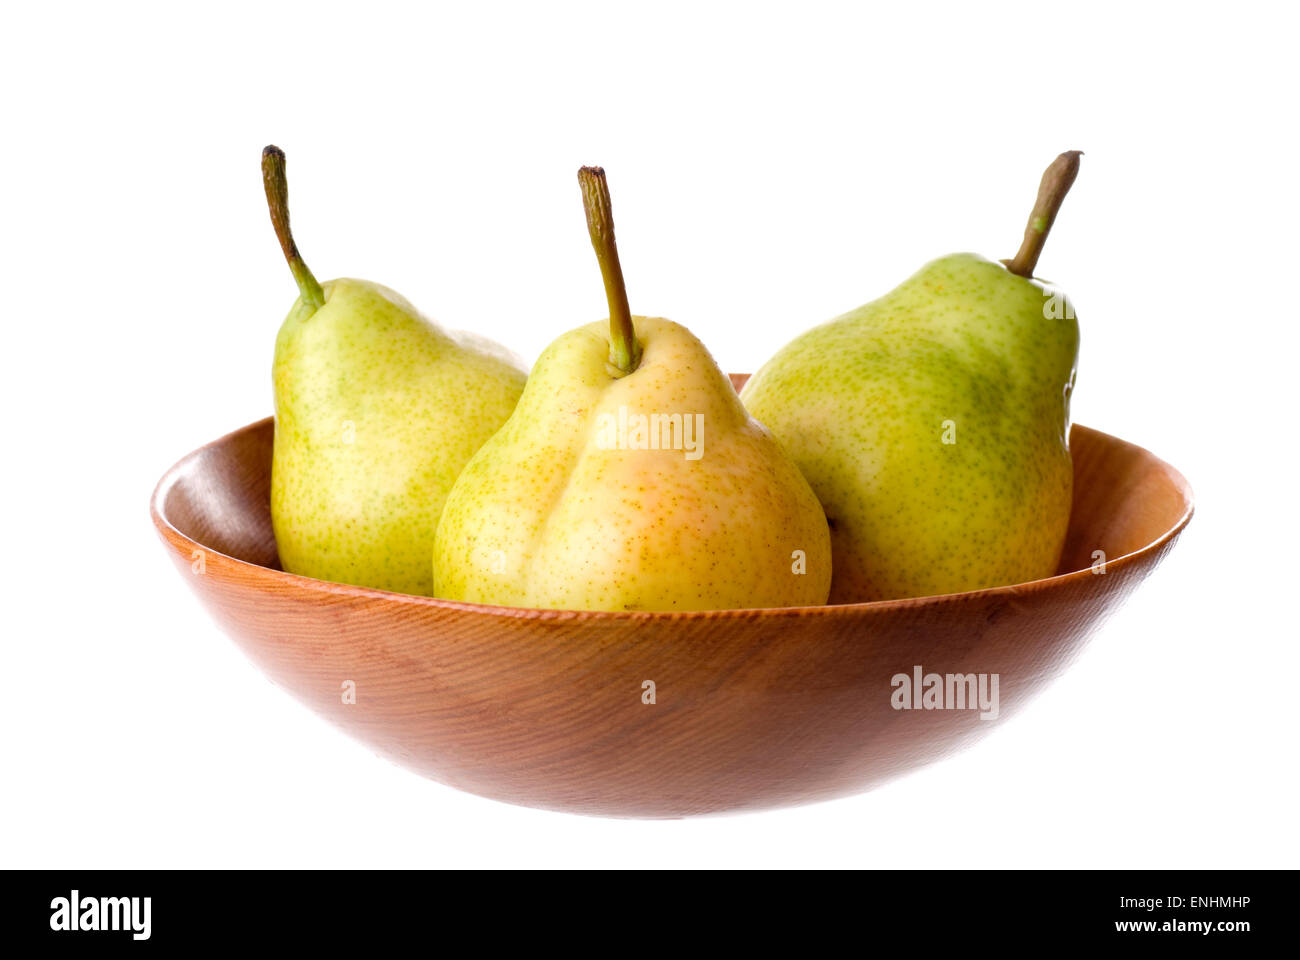 A bowl with organic pears. - Stock Image